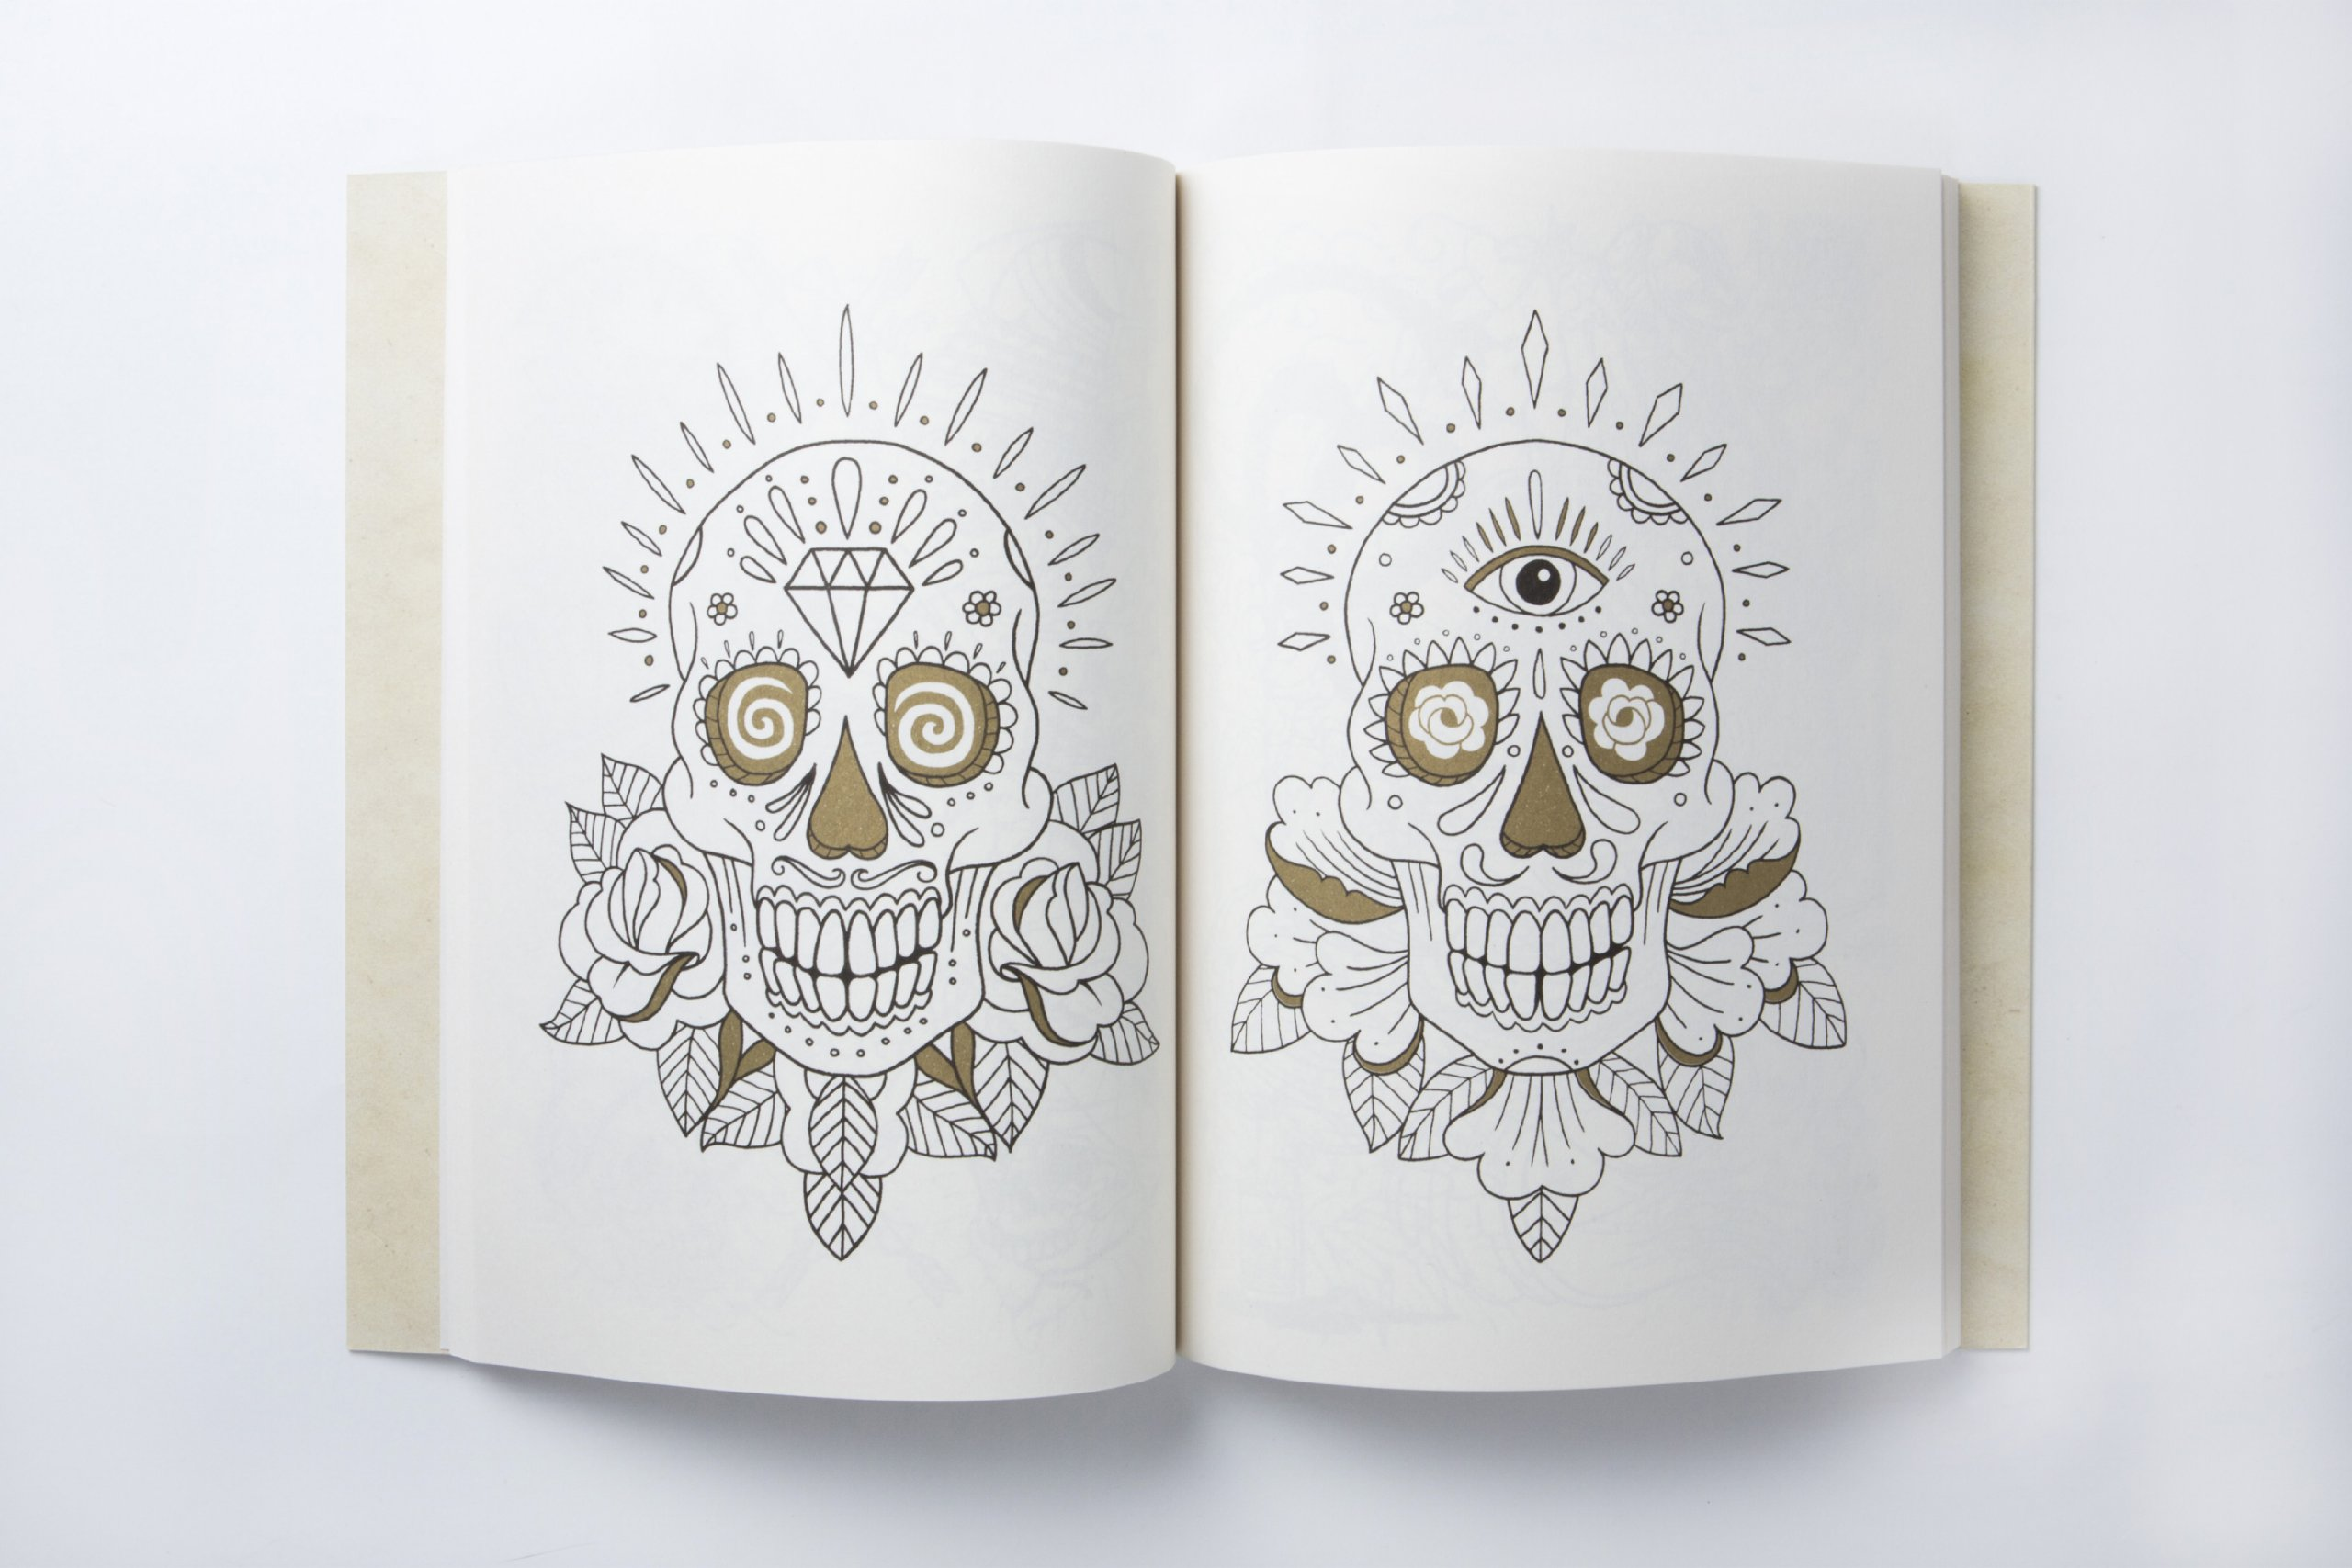 The tattoo coloring book megamunden - Buy The Tattoo Colouring Book Book Online At Low Prices In India The Tattoo Colouring Book Reviews Ratings Amazon In